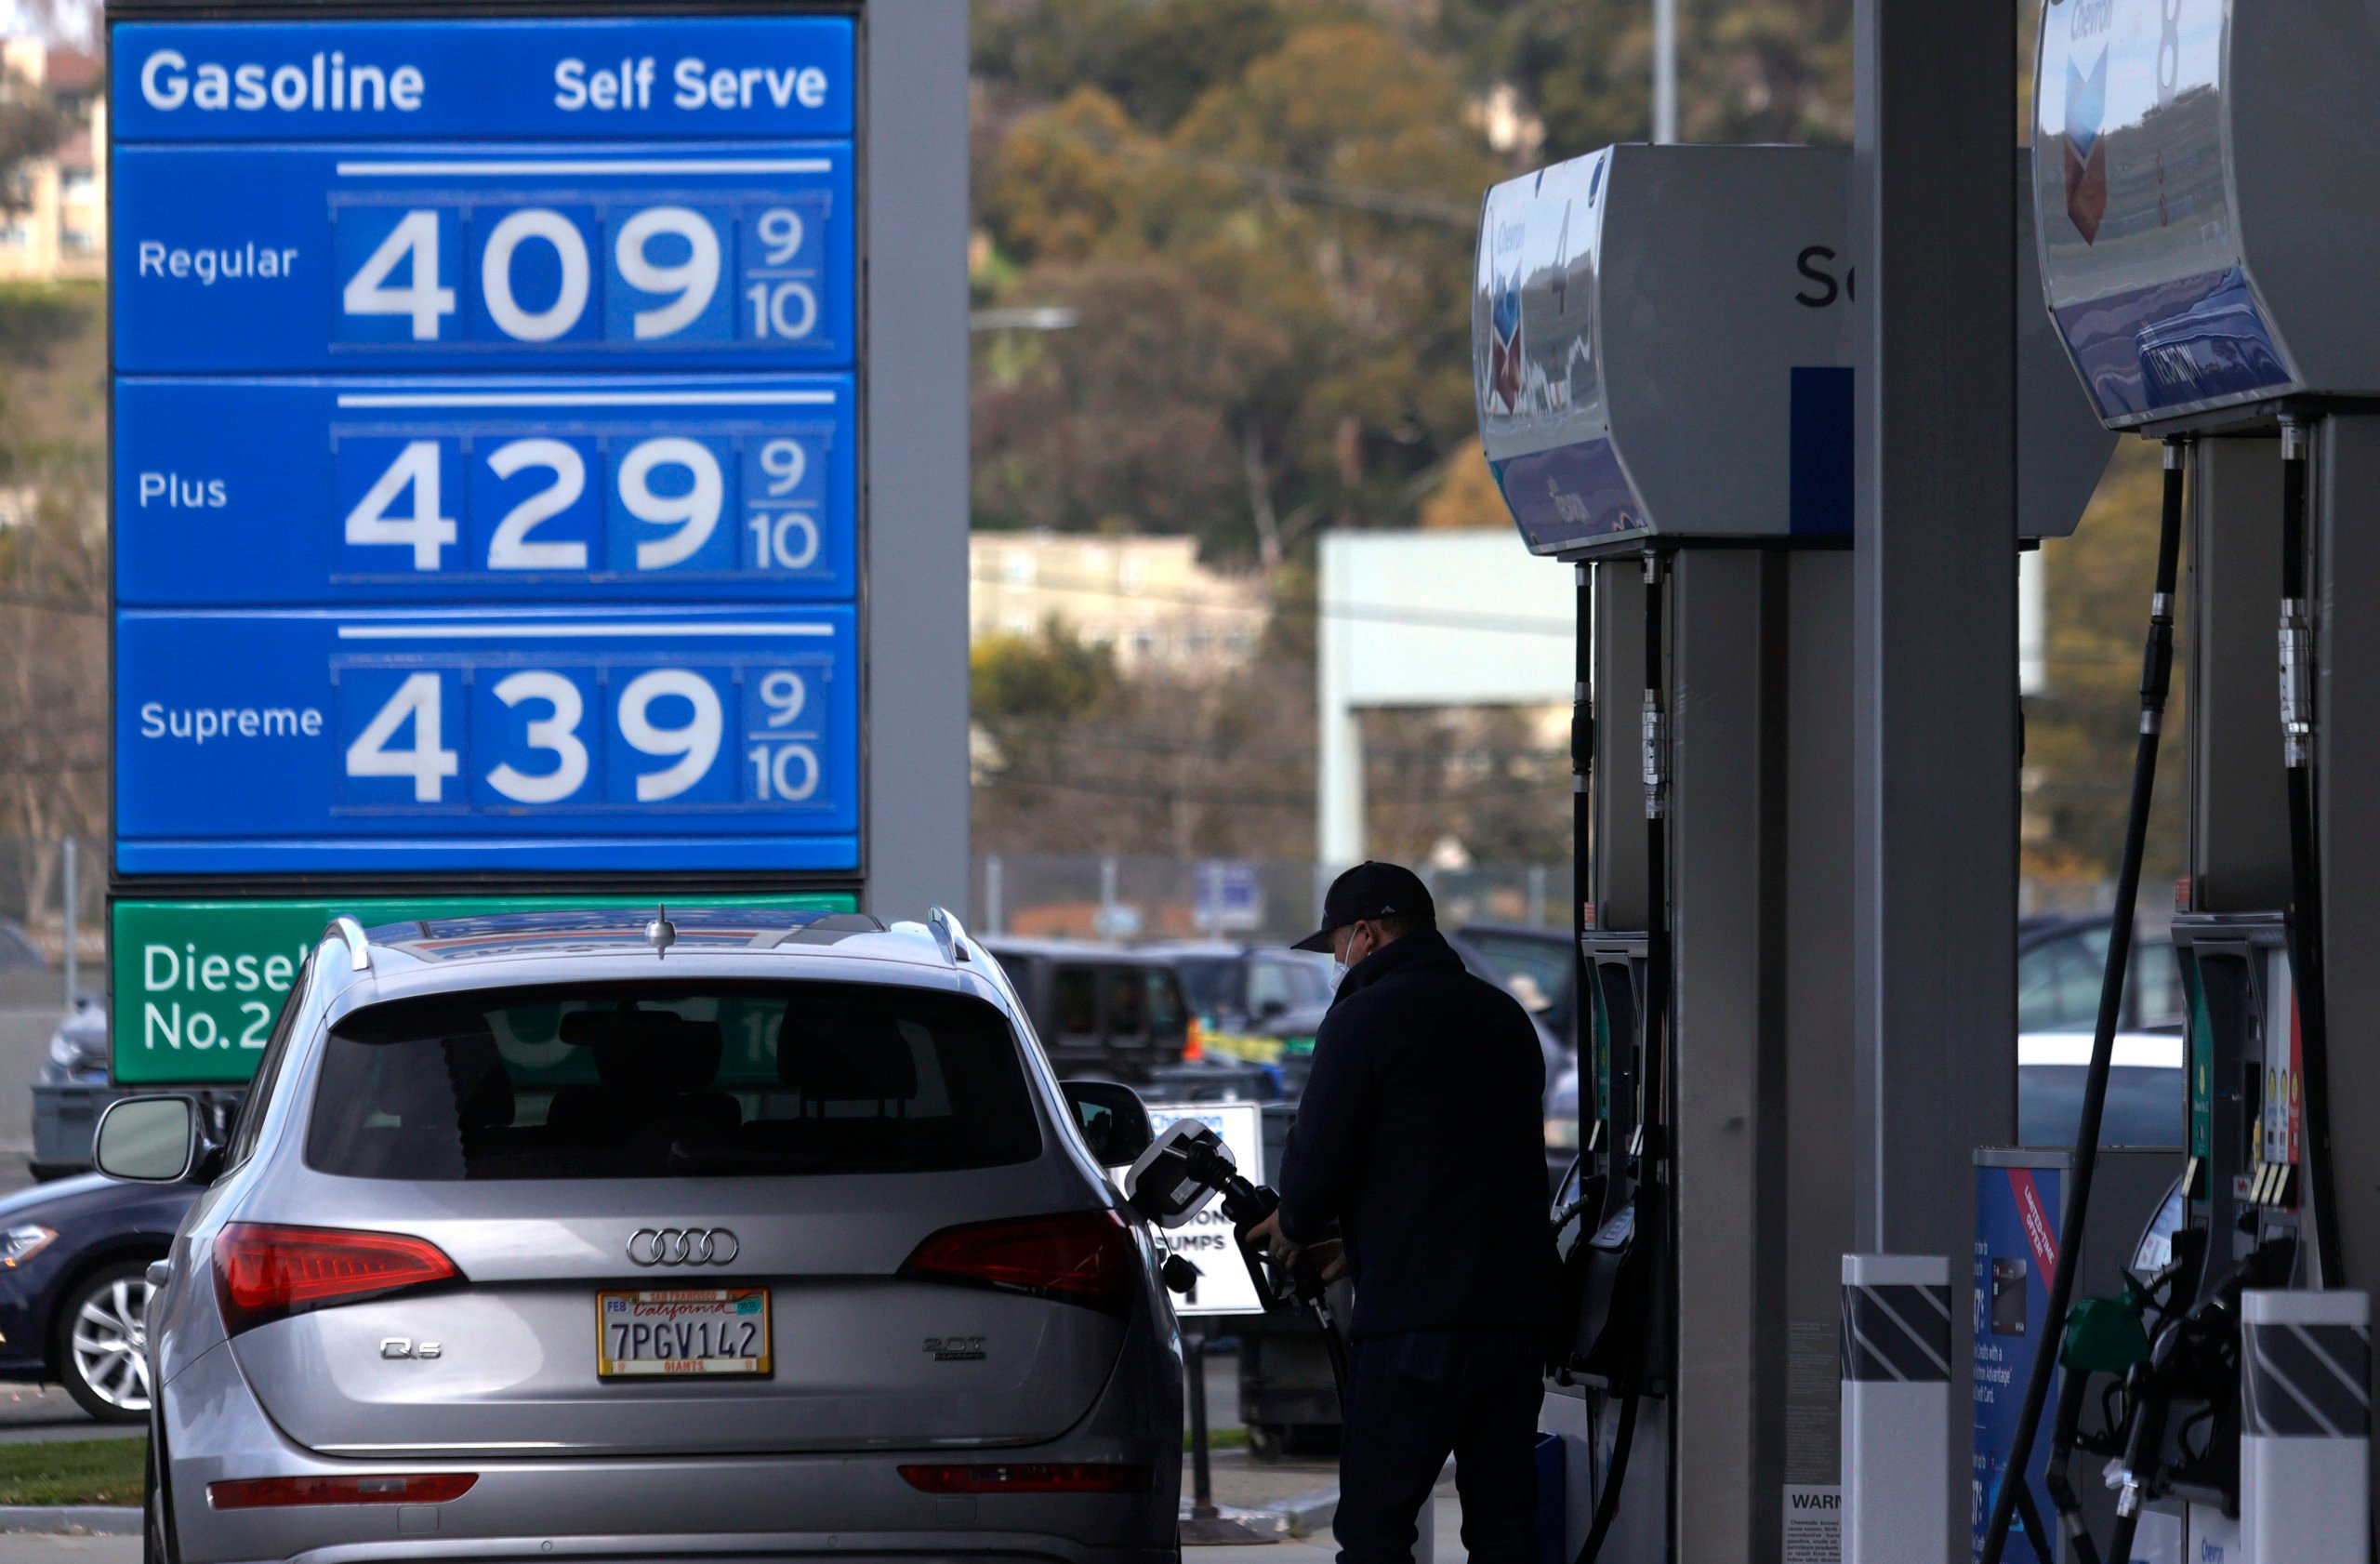 A customer pumps gas into his vehicle at a Chevron gas station in Mill Valley, California in March. (Justin Sullivan/Getty Images)